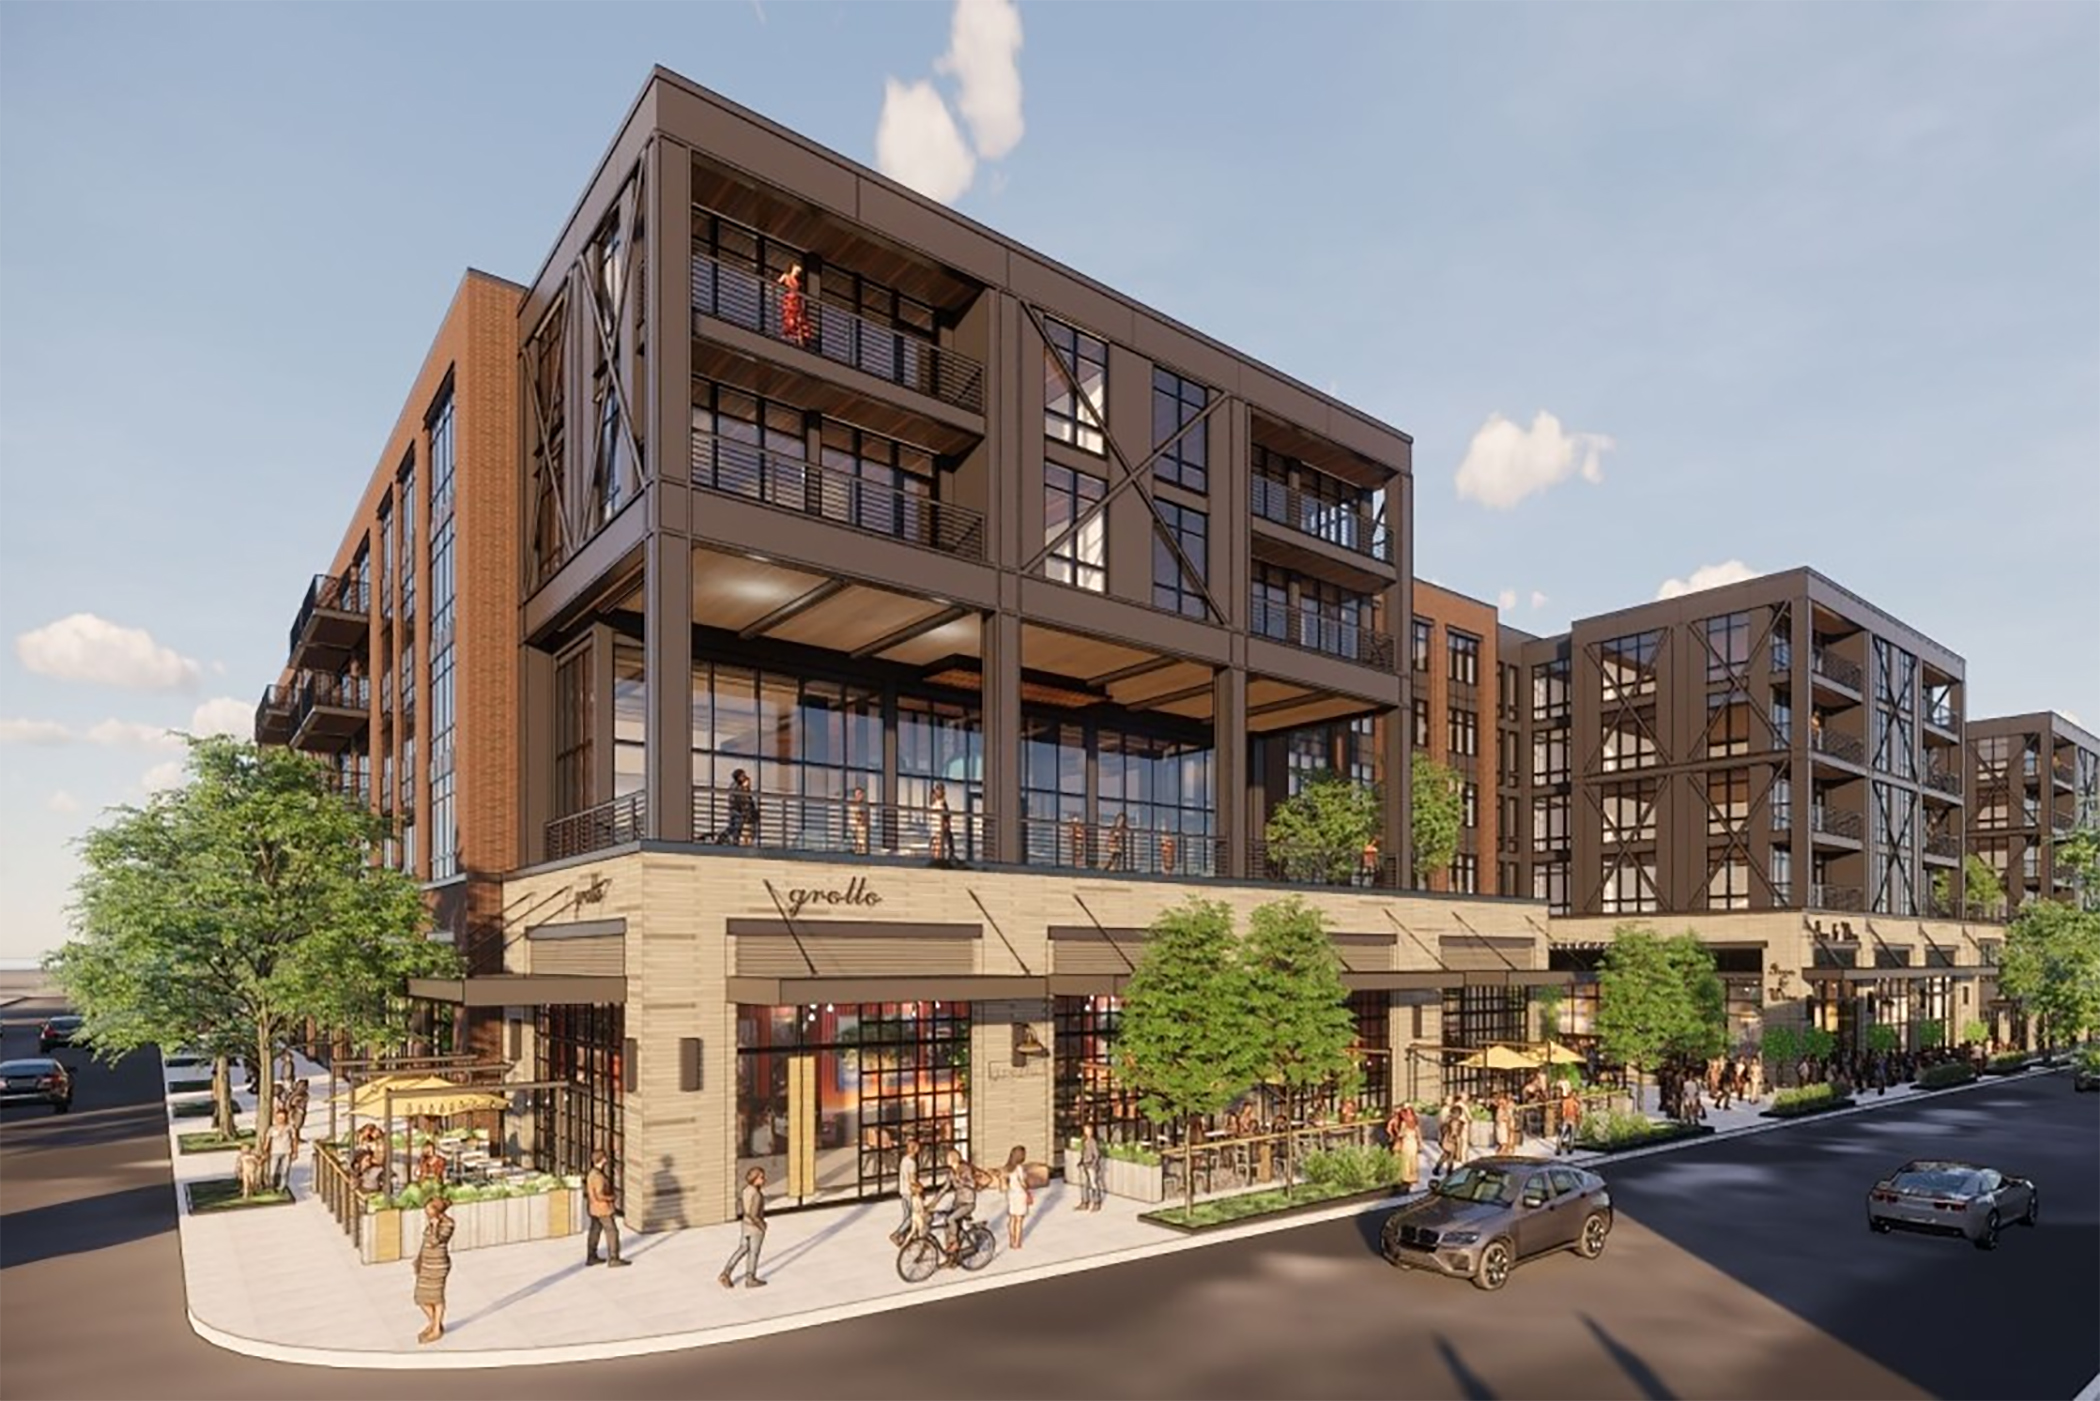 Capital Square Launches Project-Specific Opportunity Zone Fund to Develop Mixed-Use Multifamily Community in Richmond